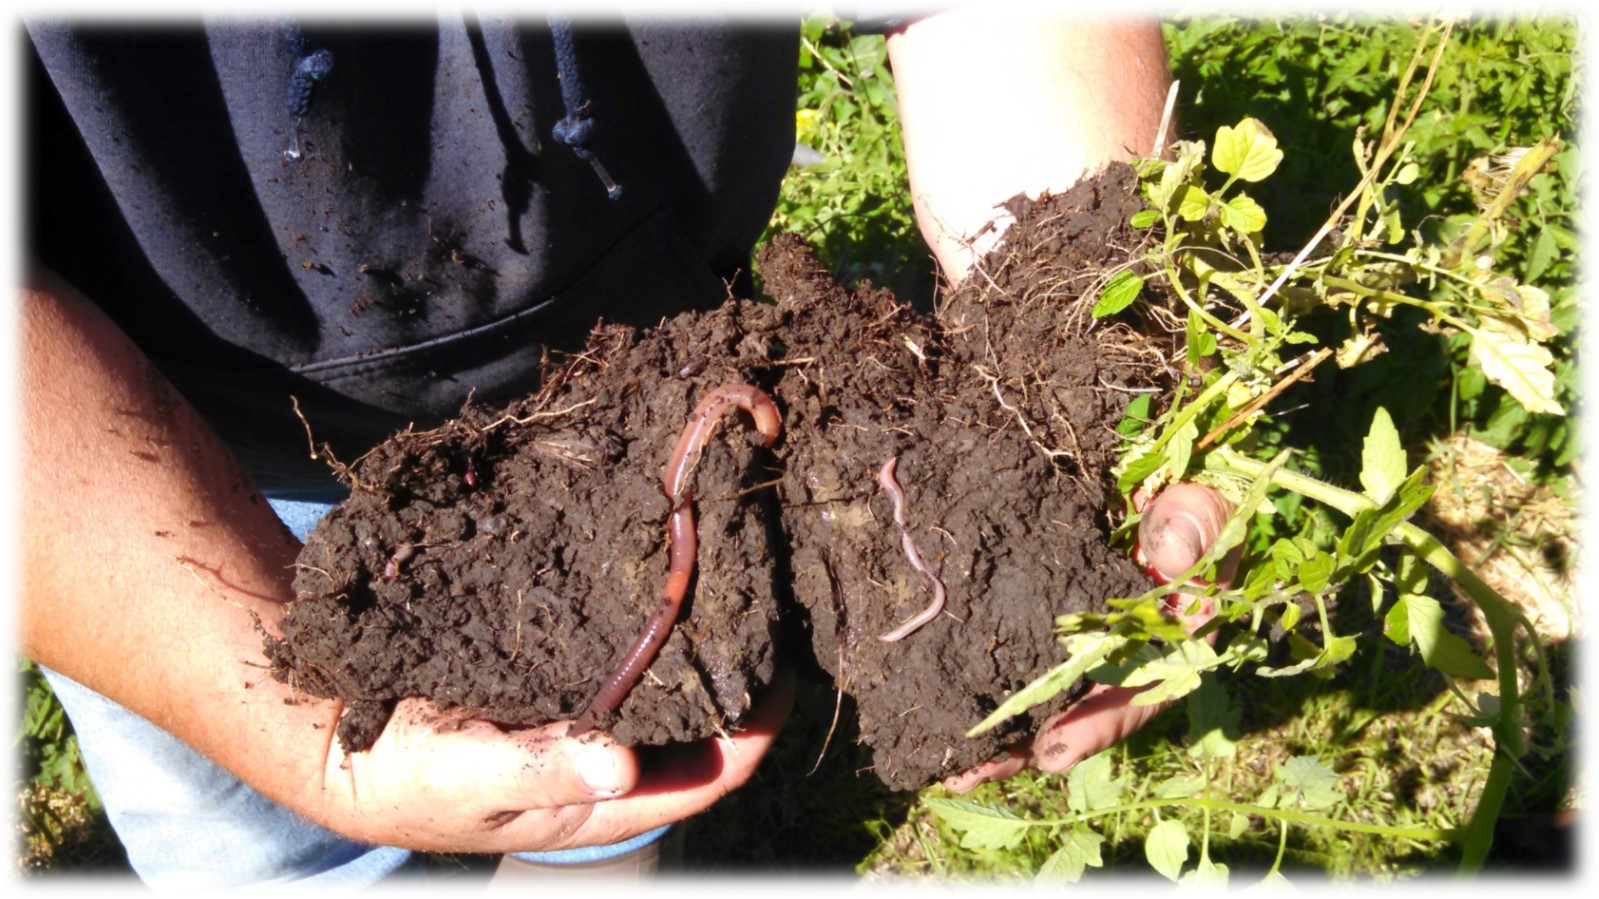 how-we-help-soil-soft-2.jpg